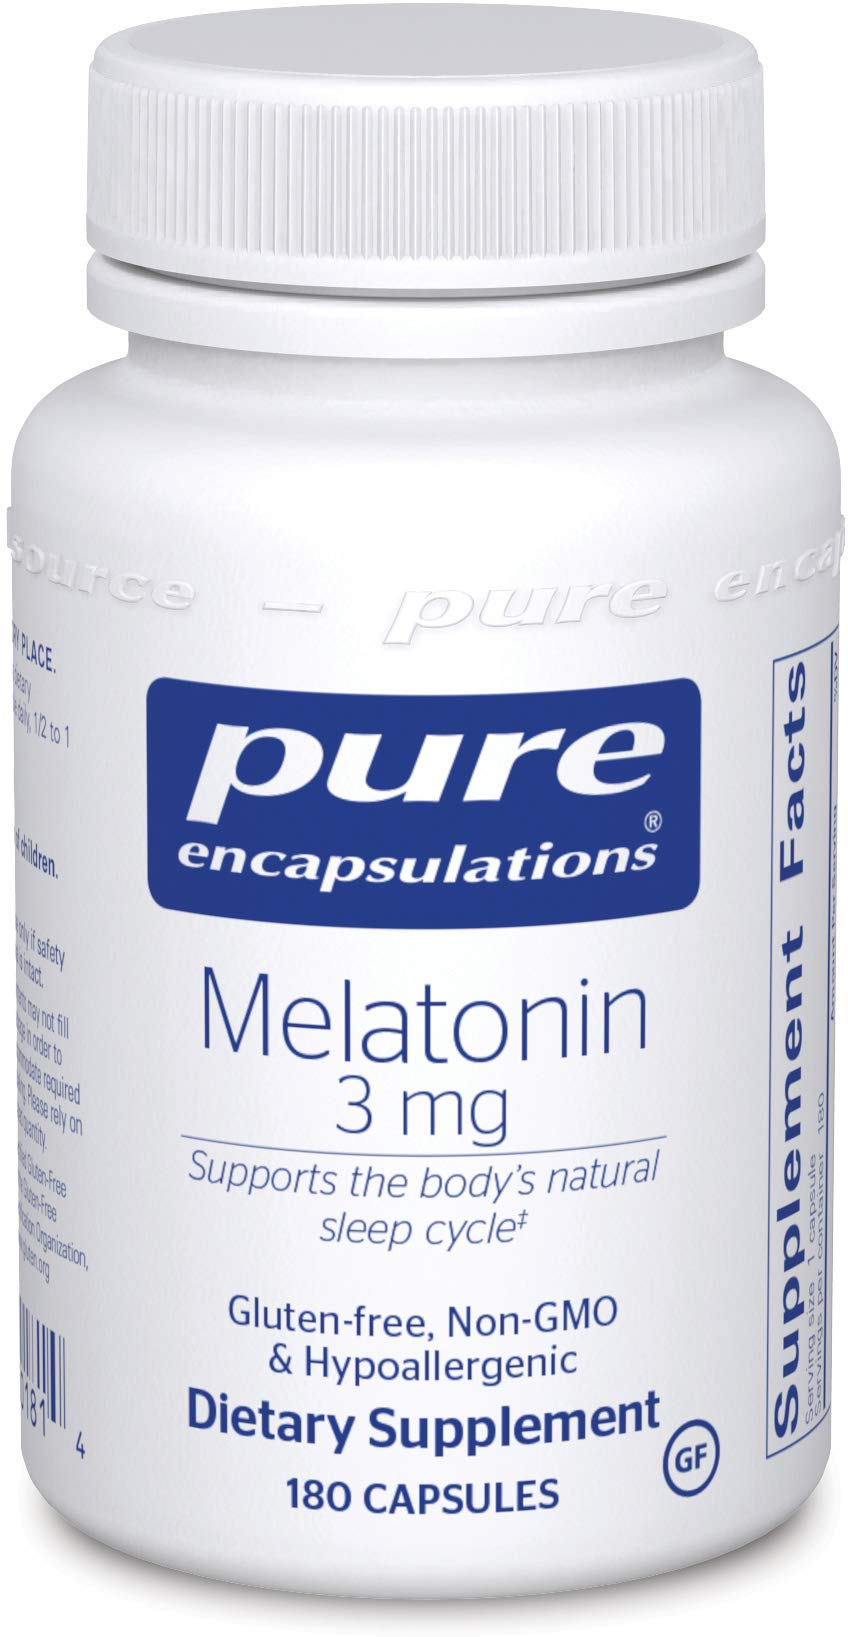 Pure Encapsulations - Melatonin 3 mg - Hypoallergenic Supplement Supports the Body's Natural Sleep Cycle* - 180 Capsules